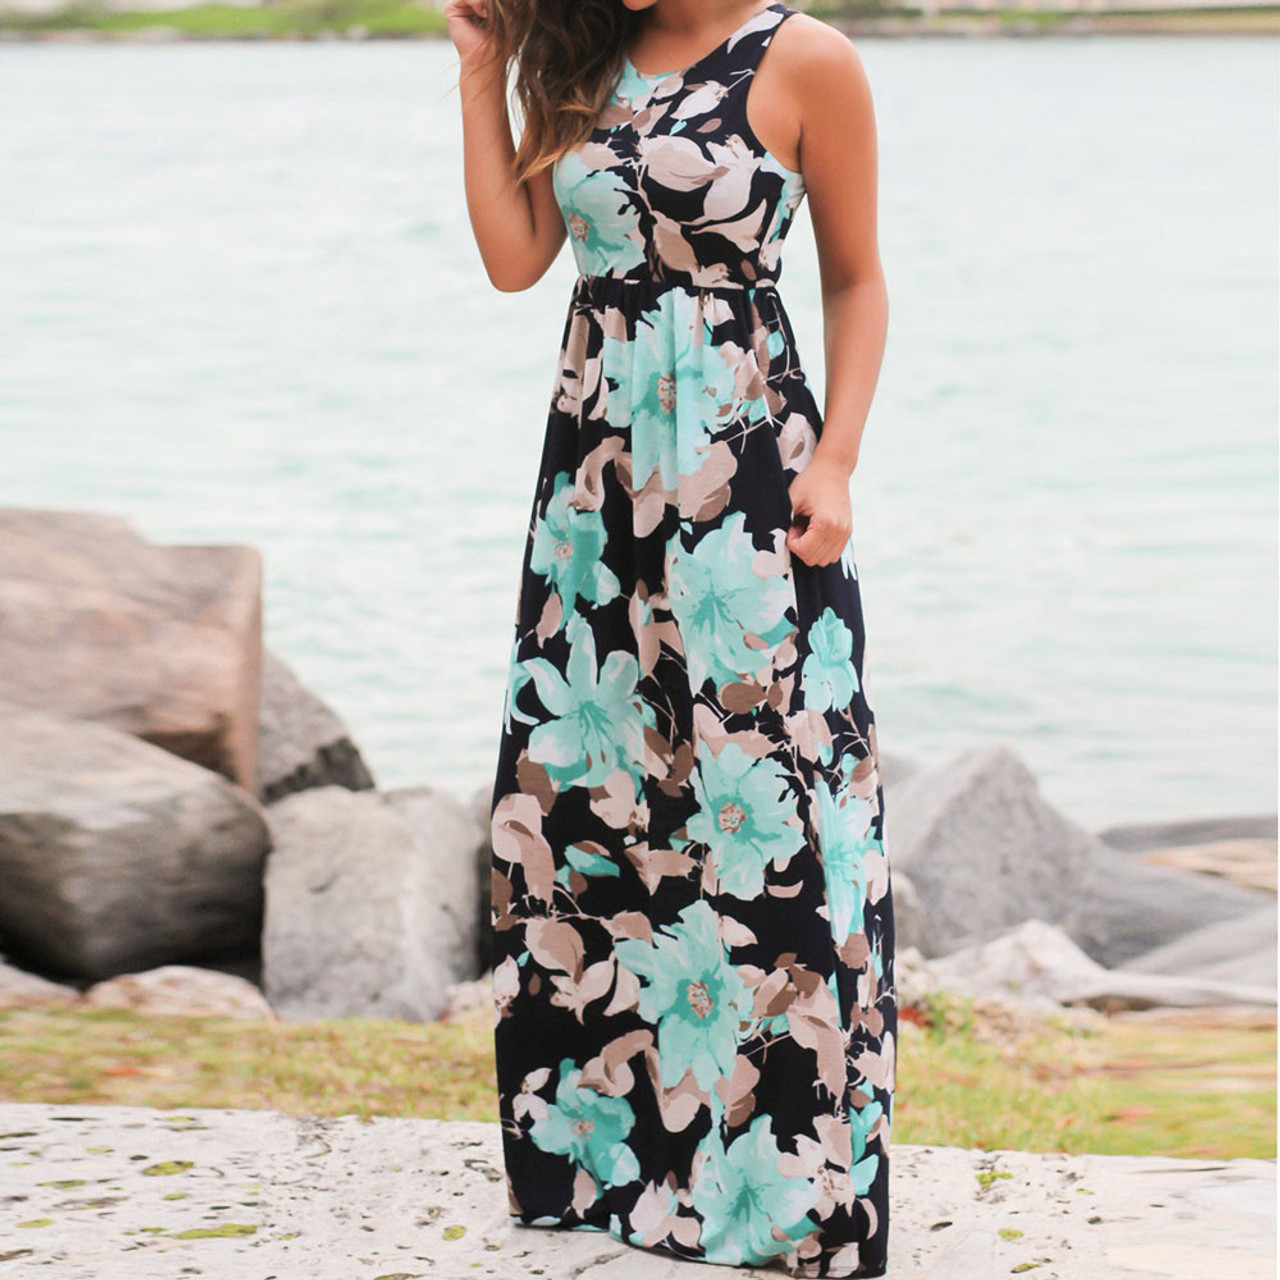 63ea9695c5cb ... Summer Casual Clothing Sexy Womens Sleeveless Beach Long Dress Elegant Ladies  Boho Floral Printed Maxi Party ...